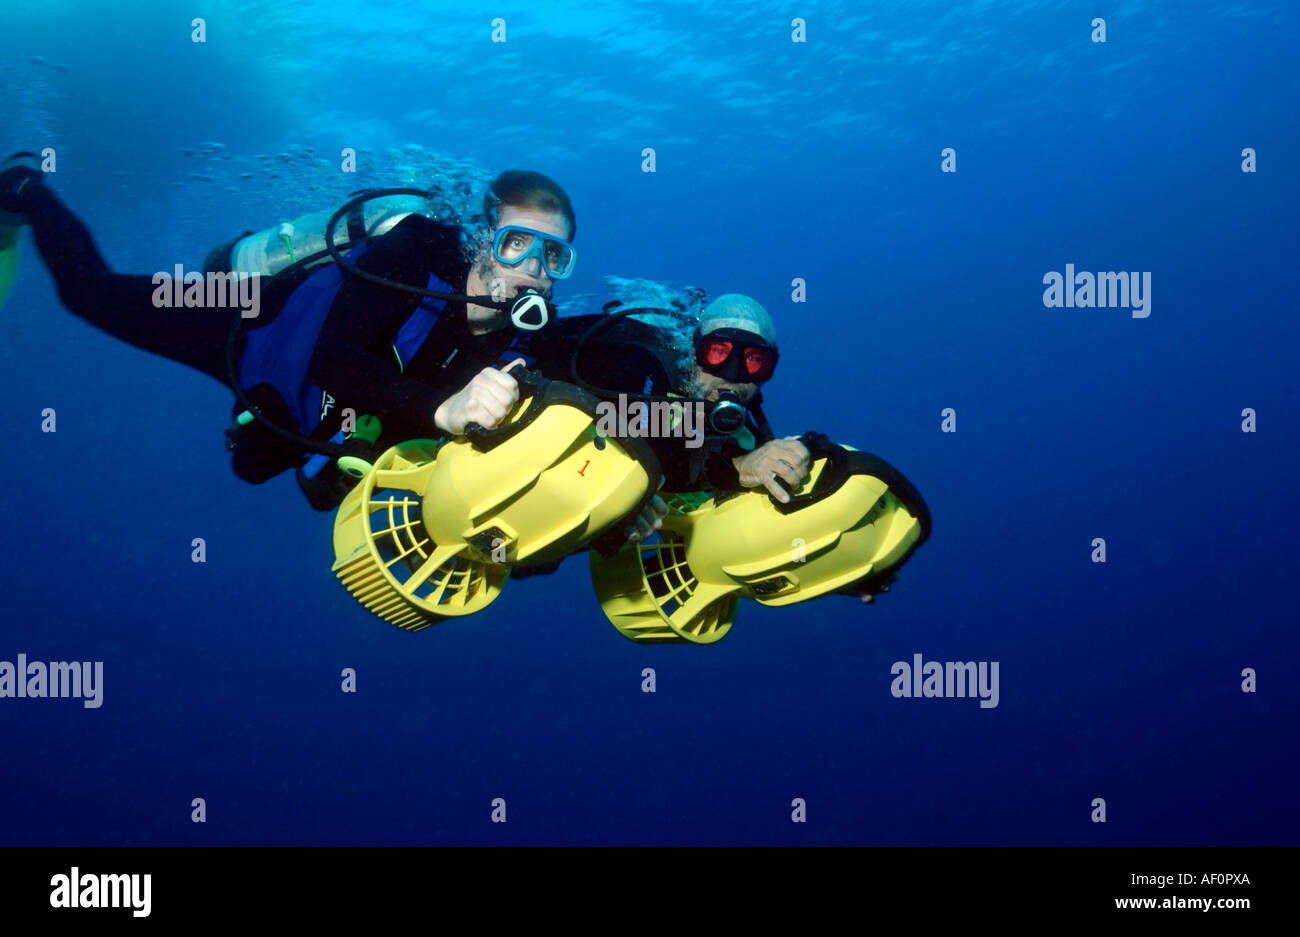 Scuba divers underwater on Dive Propulsion Vehicles DPV or scooters - Stock Image